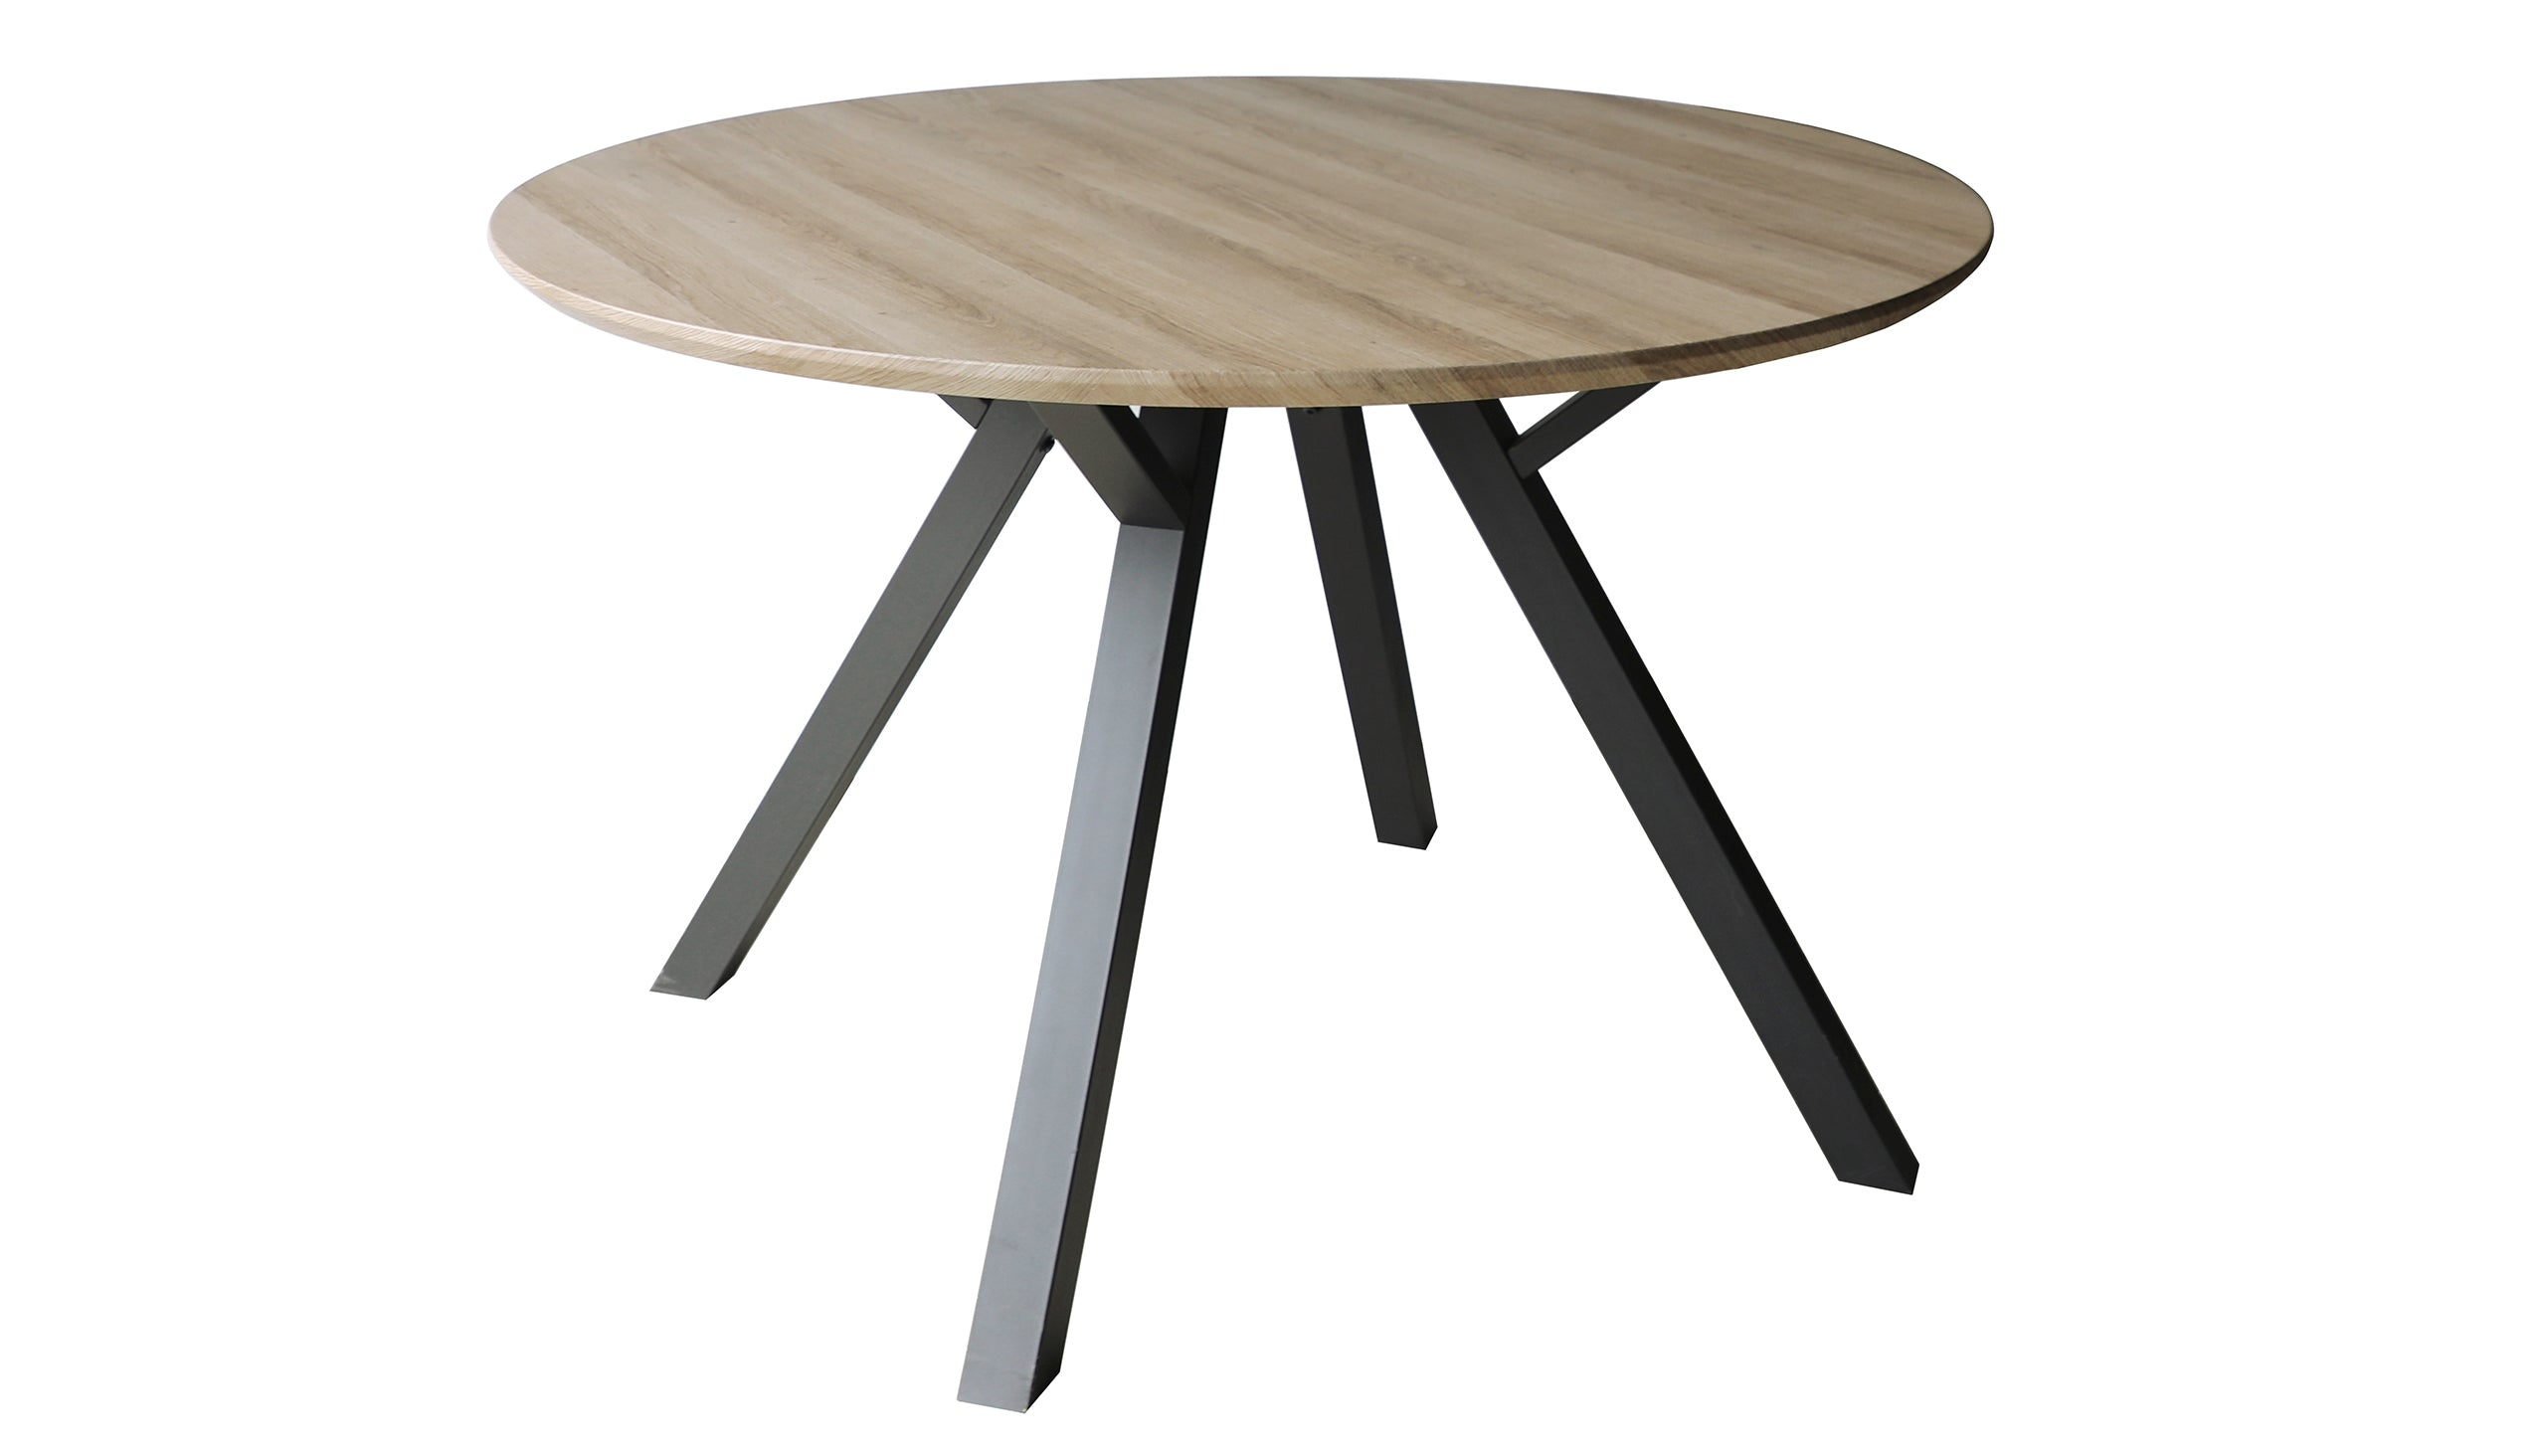 Tetro Grey Wood Effect Round Dining Table with 4 Dining Chairs - AHF Furniture & Carpets